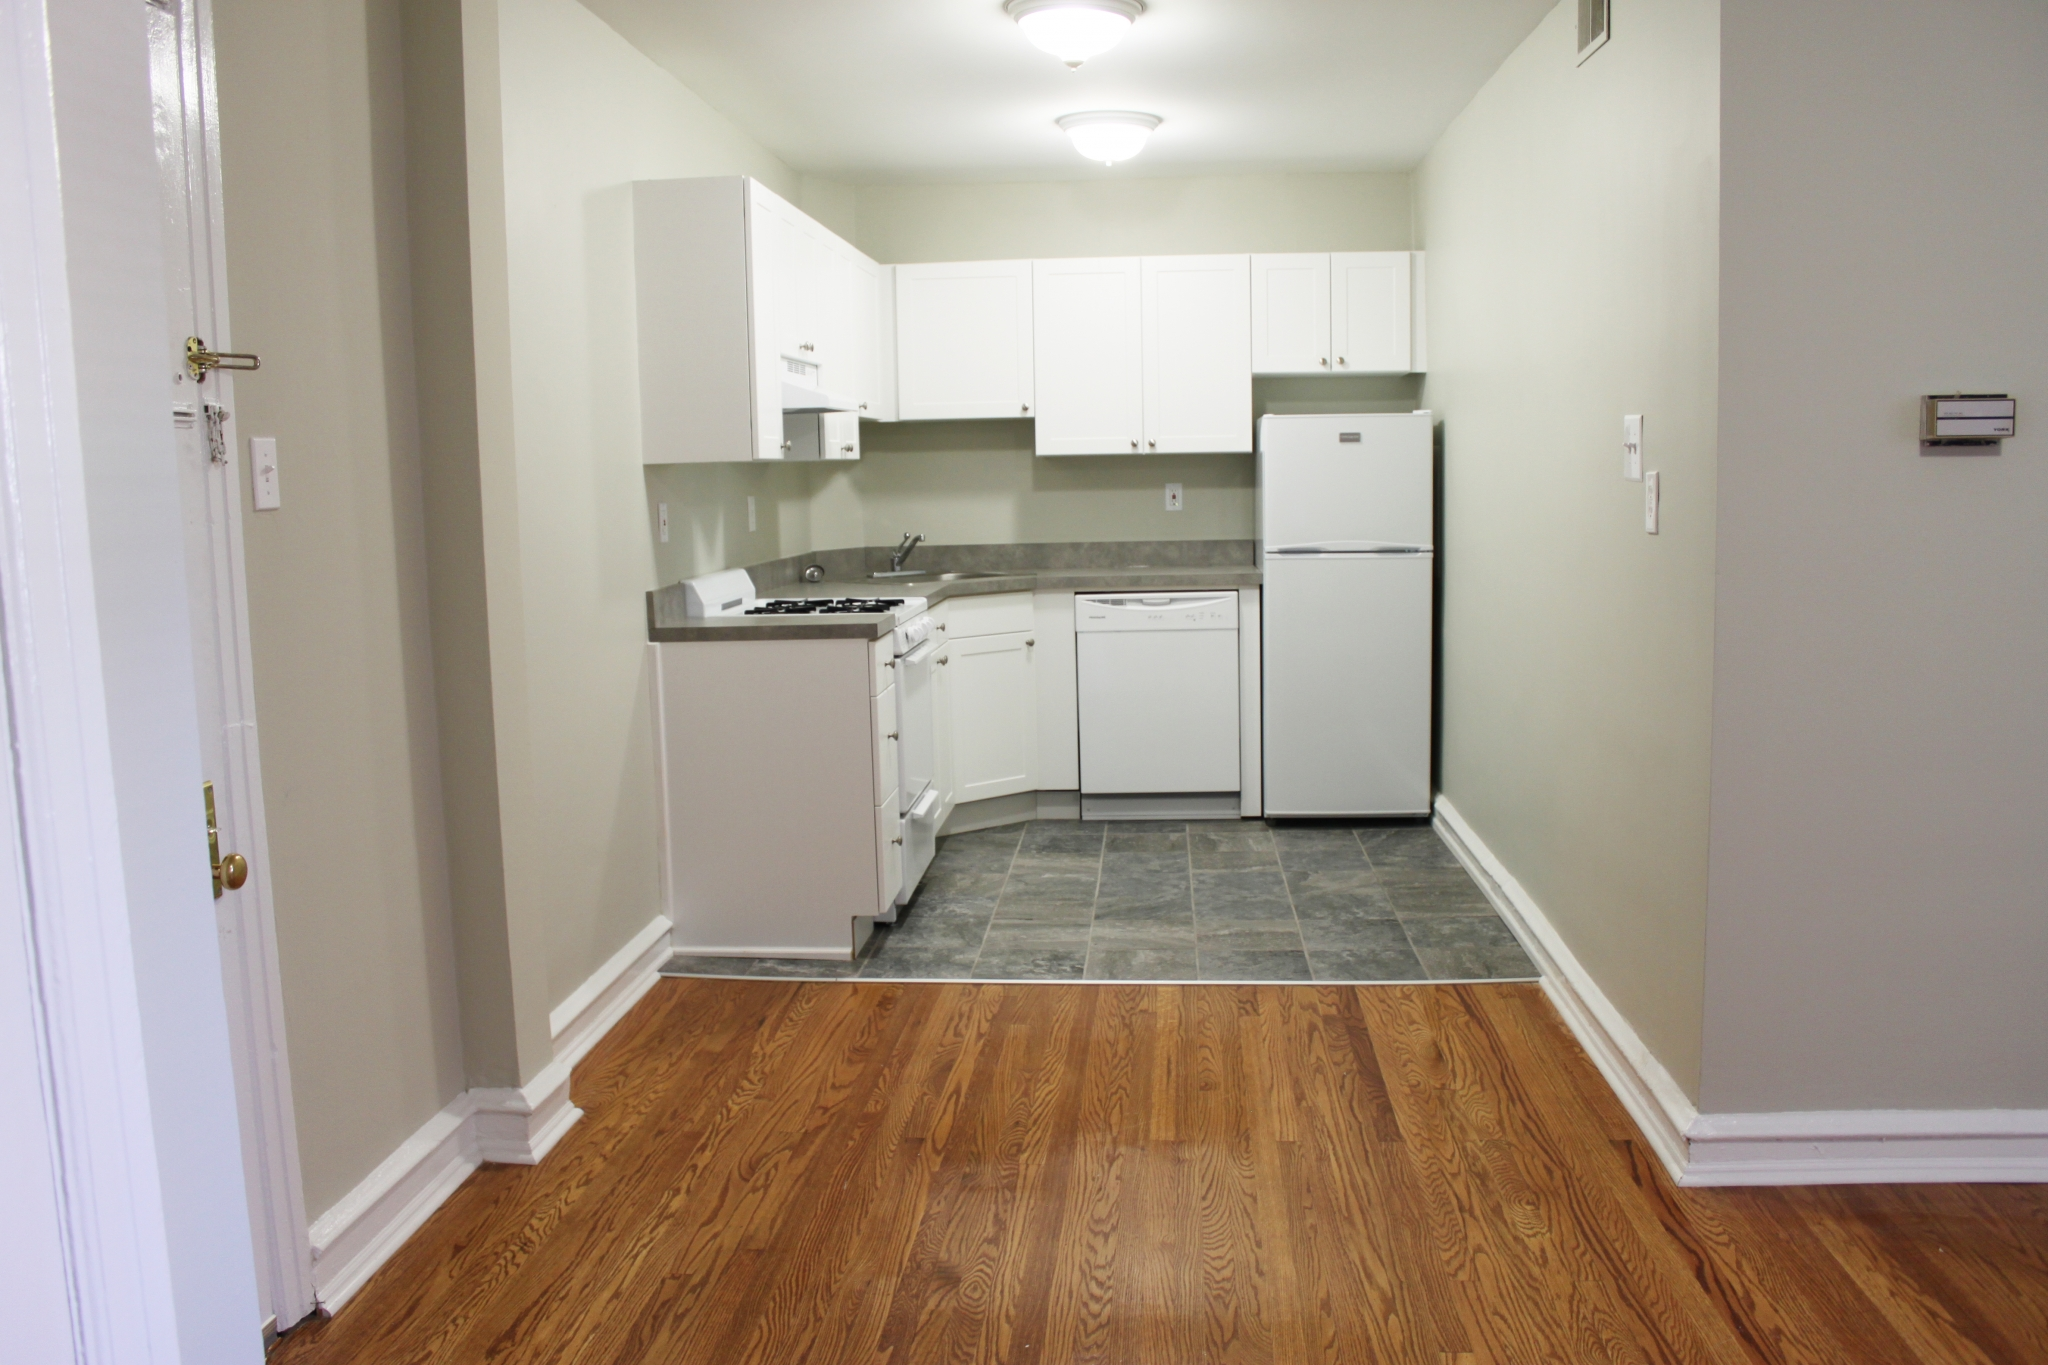 Luxurious Kitchen   Apartment Homes in Ardmore, PA   Suburban Court Apartments